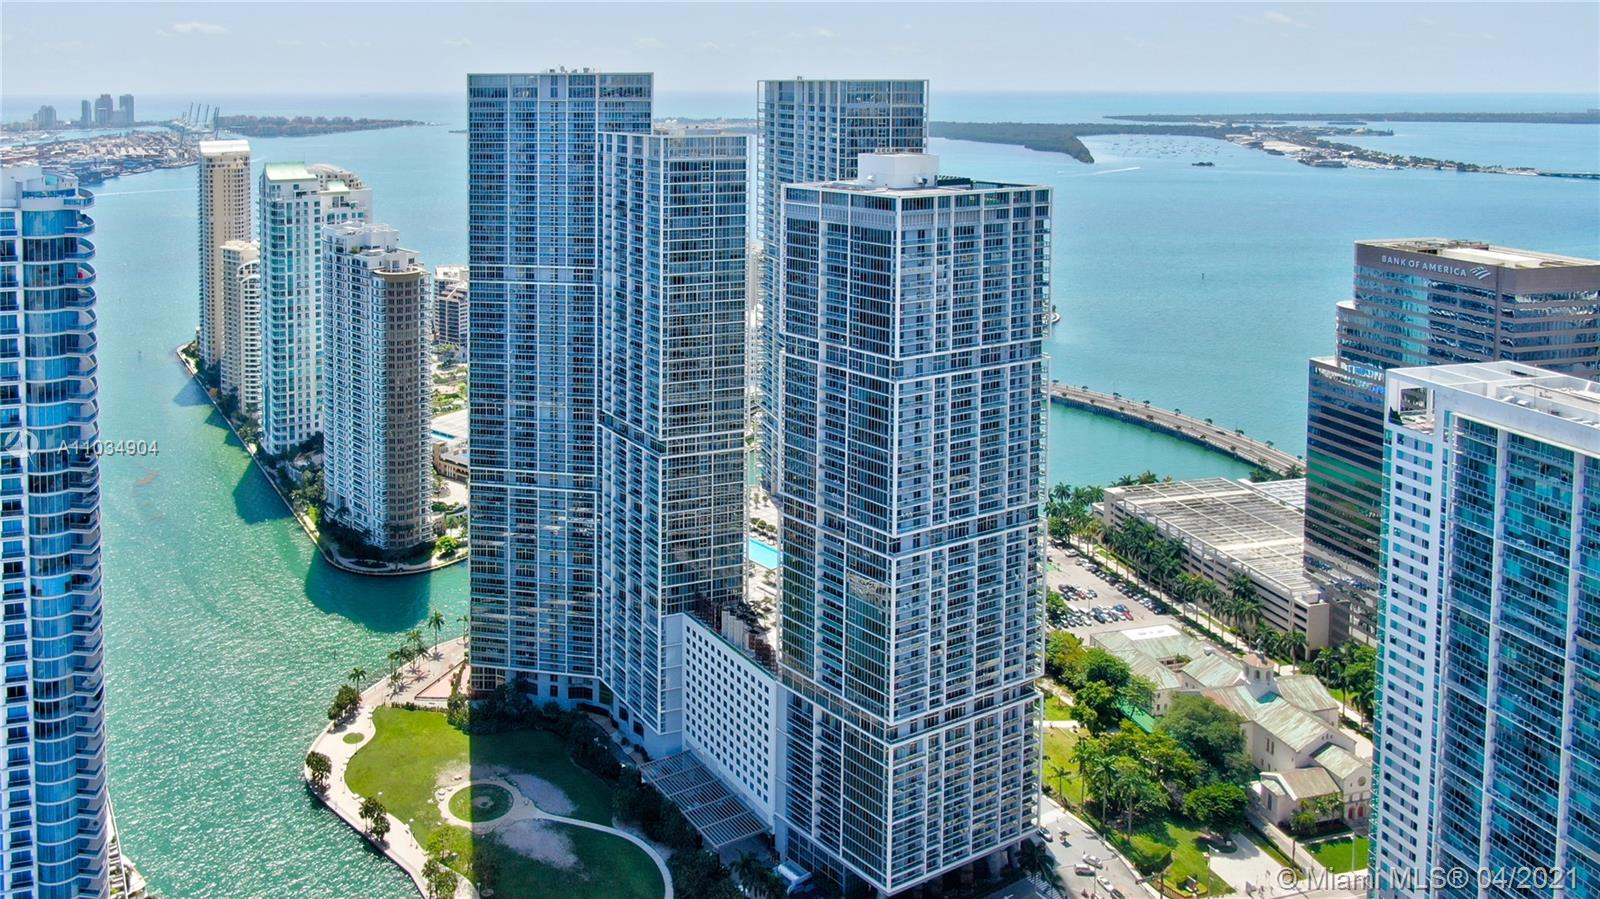 Corner unit on the 48th floor with southeast exposure overlooking Brickell, Brickell Key and Key Biscayne. Completely remodeled unit with fine touches, featuring 3 bedrooms, 3 full bathrooms, Automated system for lighting, sound and Window treatments. Master bedroom features a large closet space, double sink and cabinets, enclosed shower and Toilet room. This unit offers a storage room inside the unit. AC diffusers, custom mirrors an much more. Icon's architecture, by the world renowned firm Arquitectonica, is unique and ultra-contemporary, perfectly paired with the interior design by Philipe Starck. Its Olympic-length pool overlooking Biscayne Bay, its exceptional spa, and its lushly landscaped outdoor living room, are some of the distinct amenities that make this building a true icon.